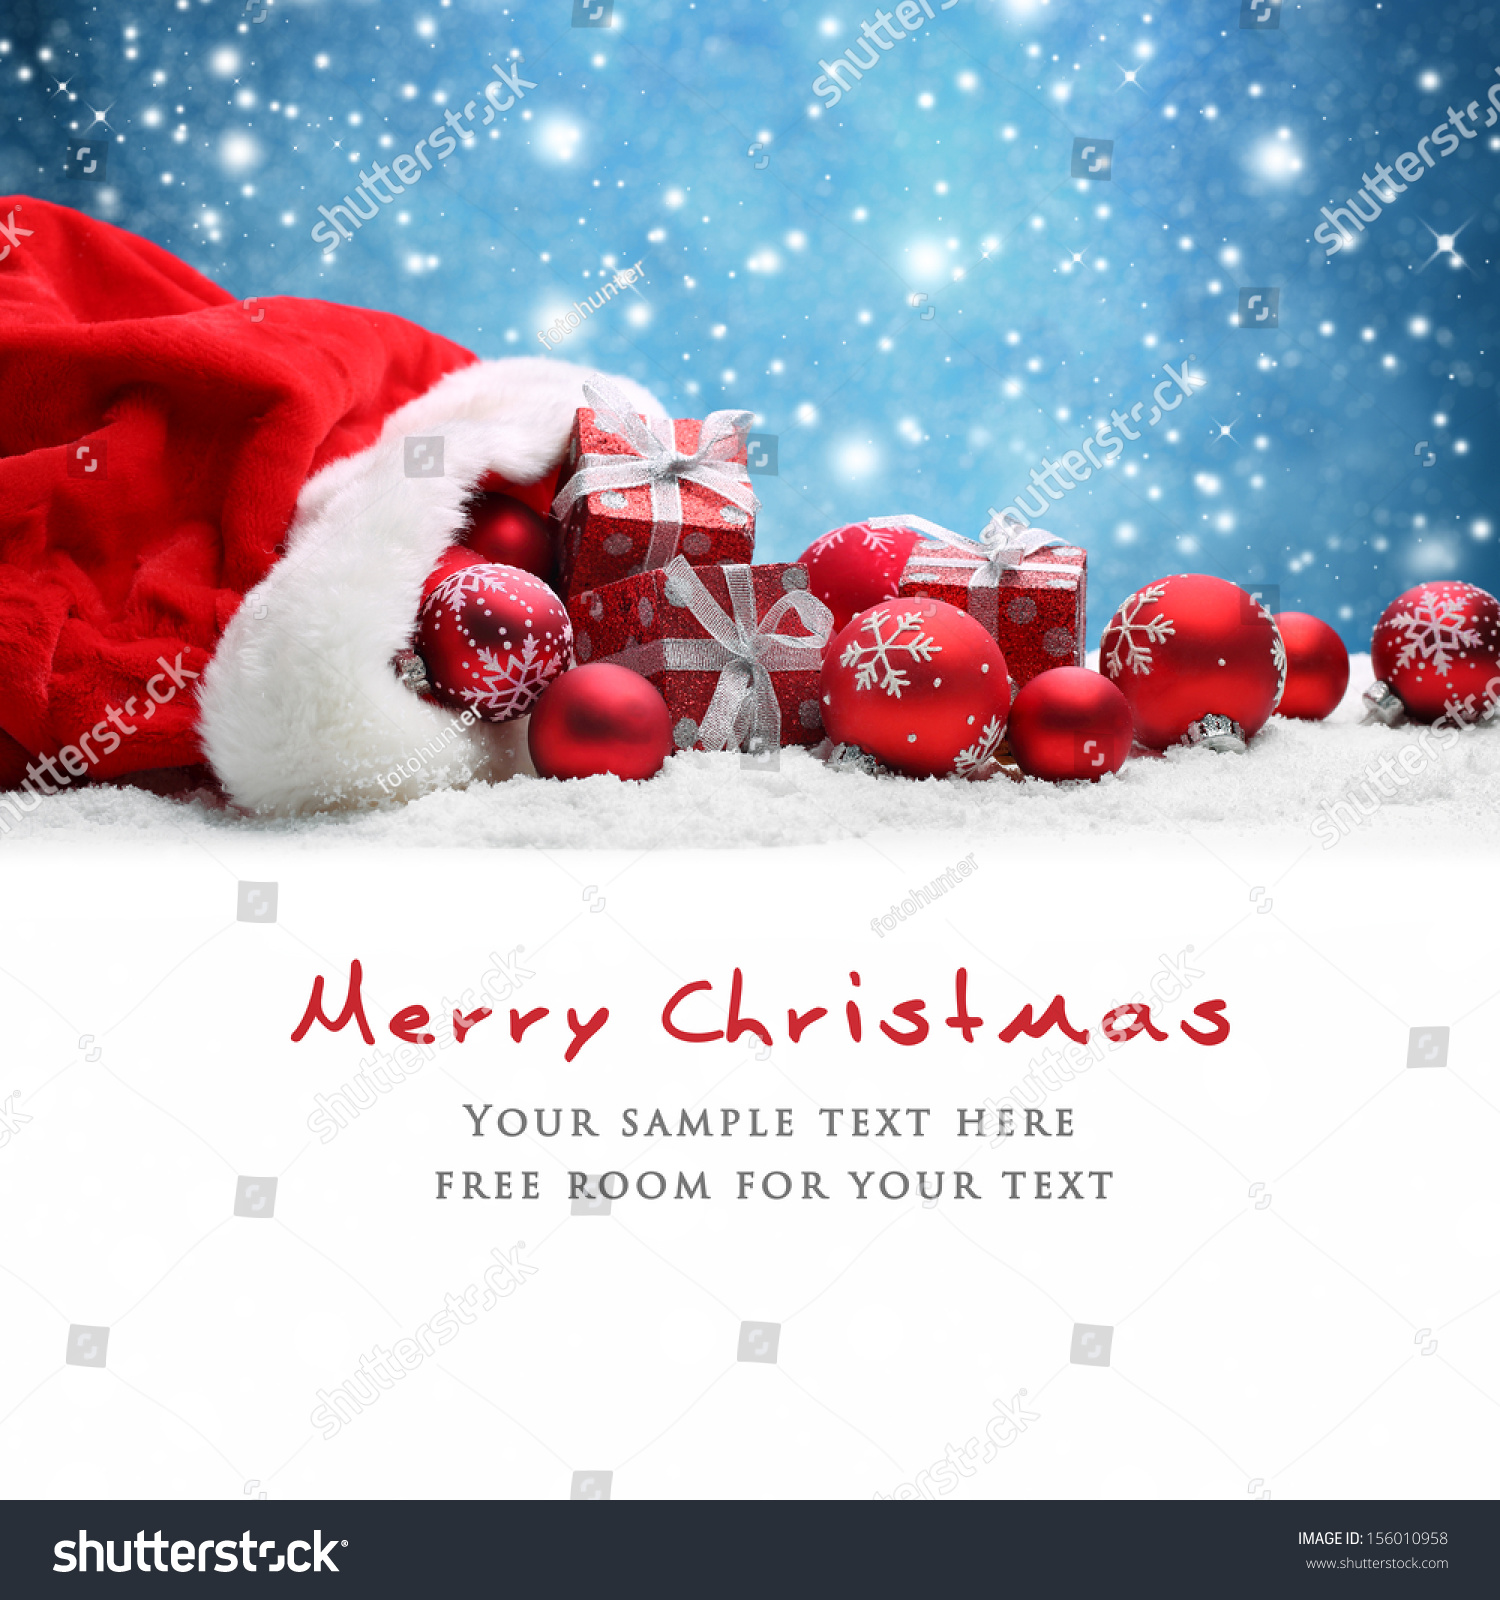 Santa claus red bag christmas balls stock photo